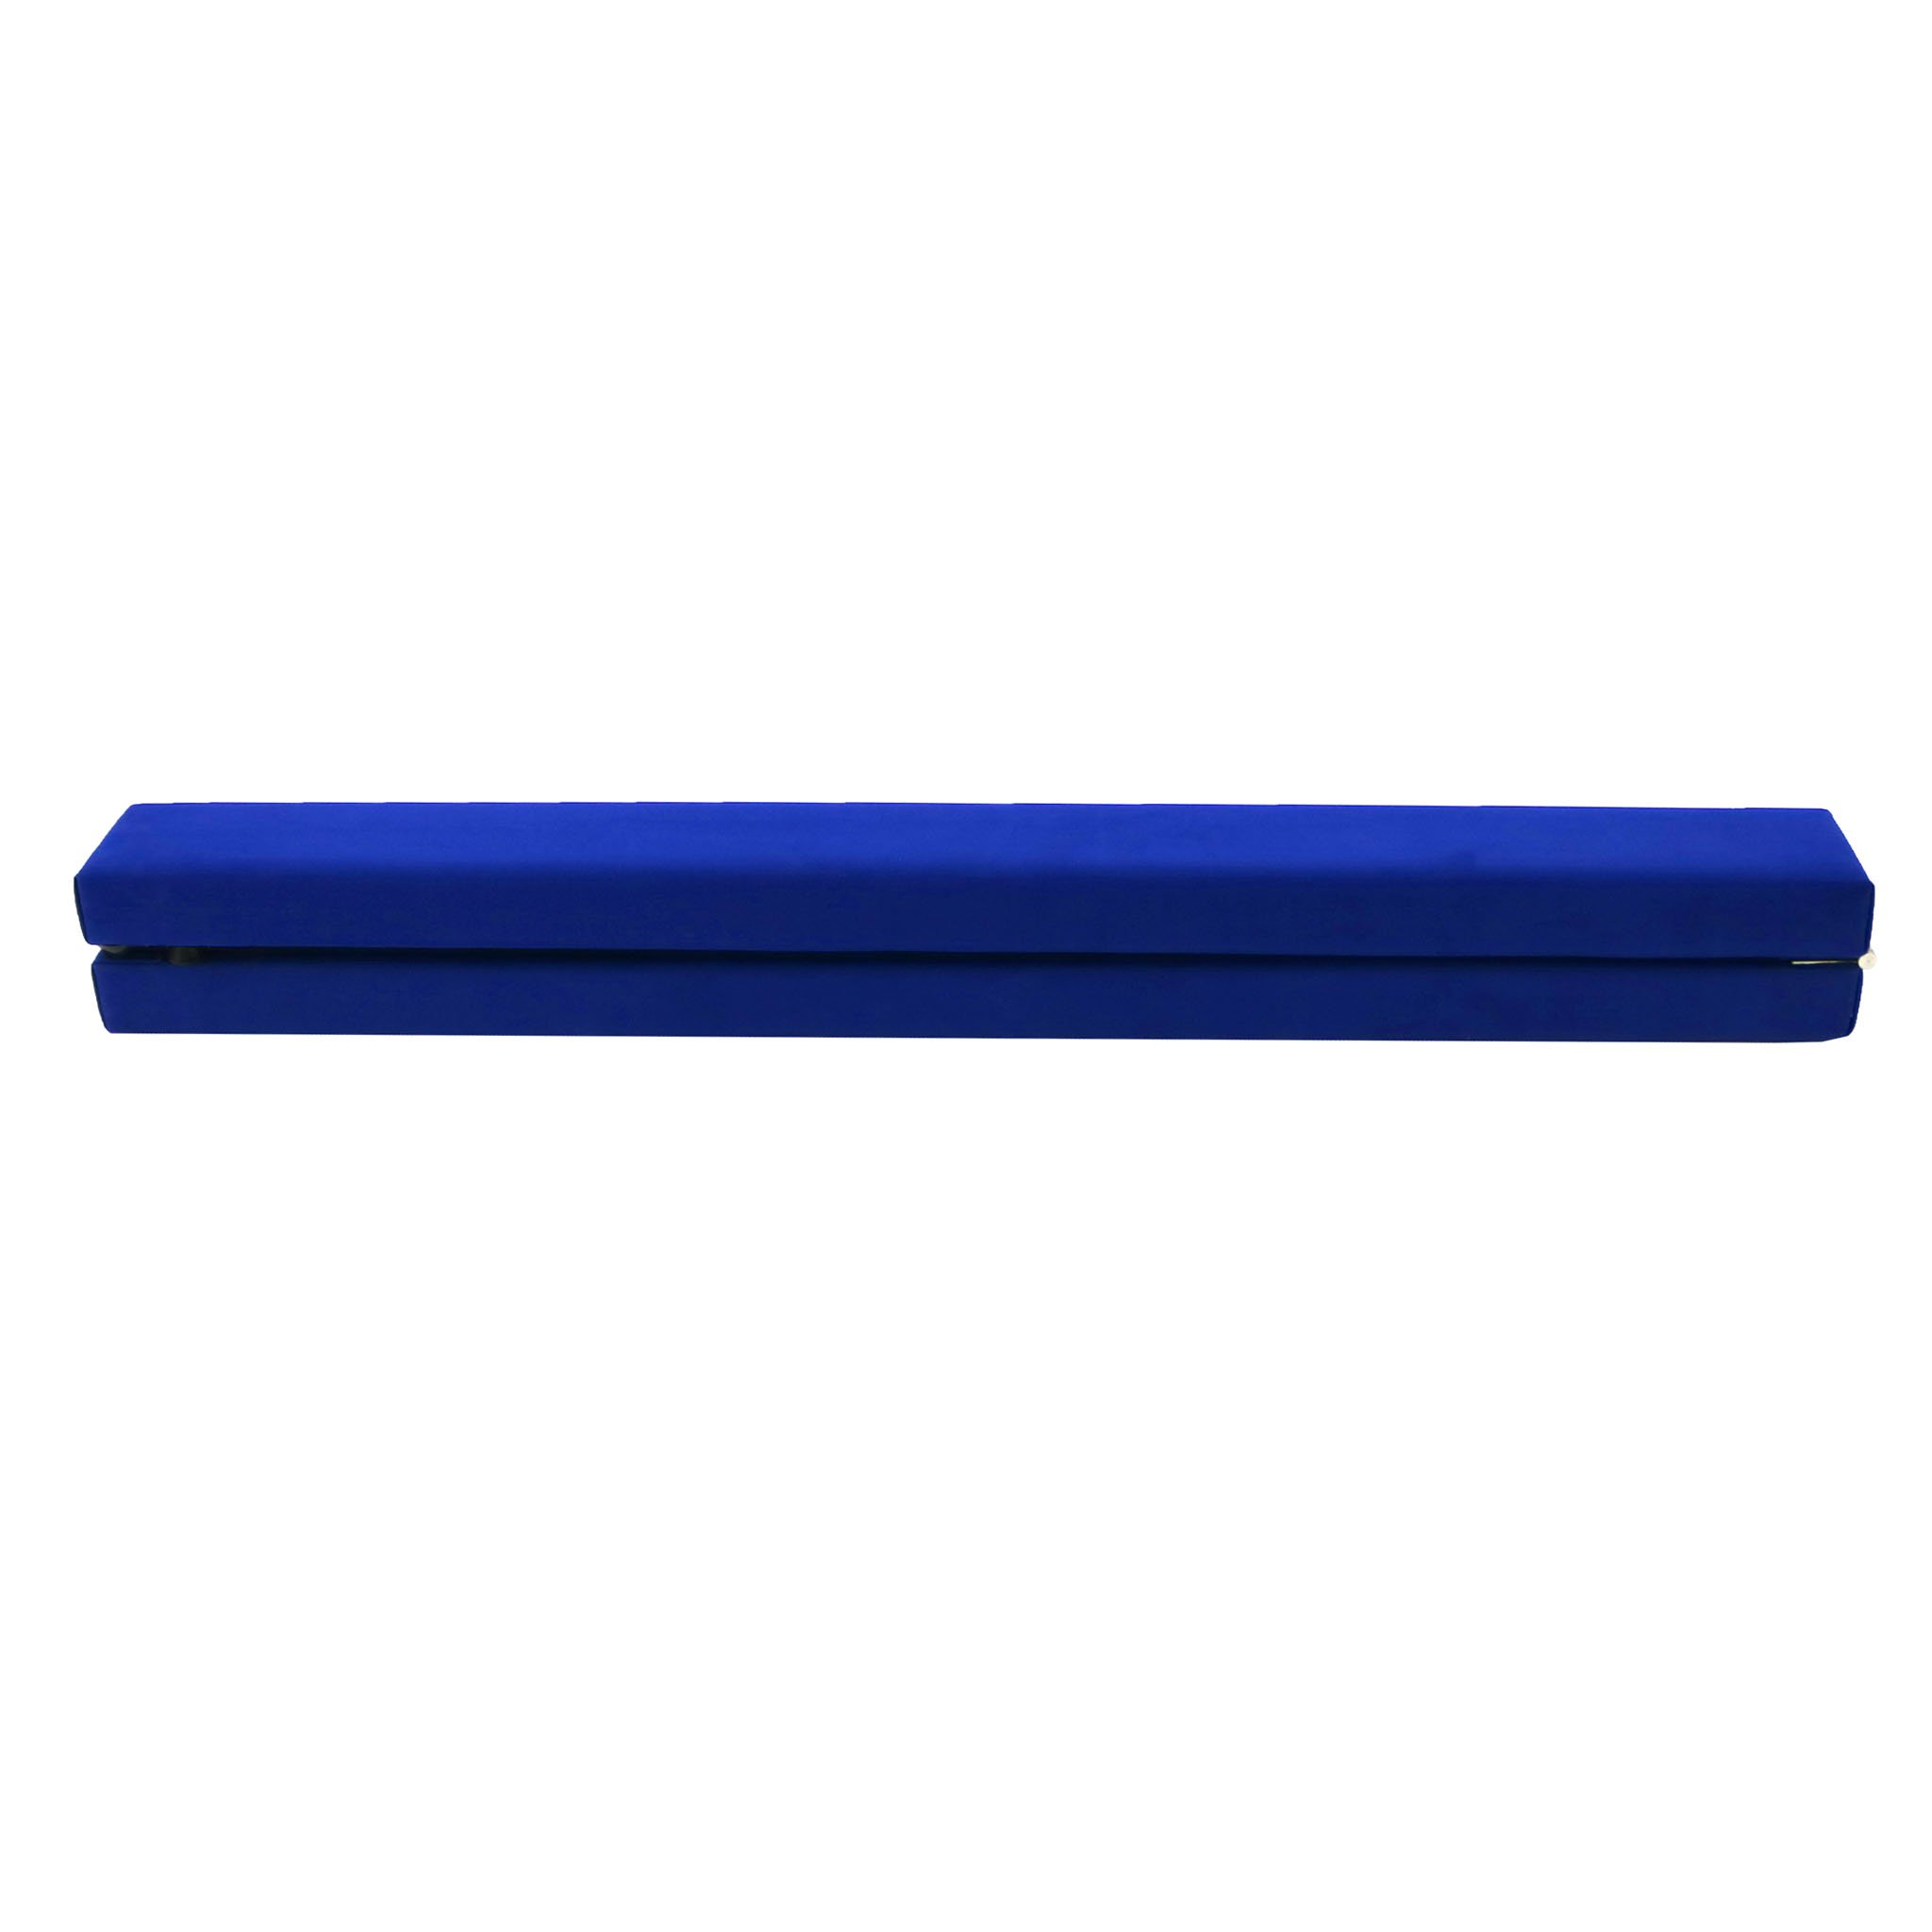 7ft 2.1m Folding Gymnastic Training Balance Beam Blue Faux Suede